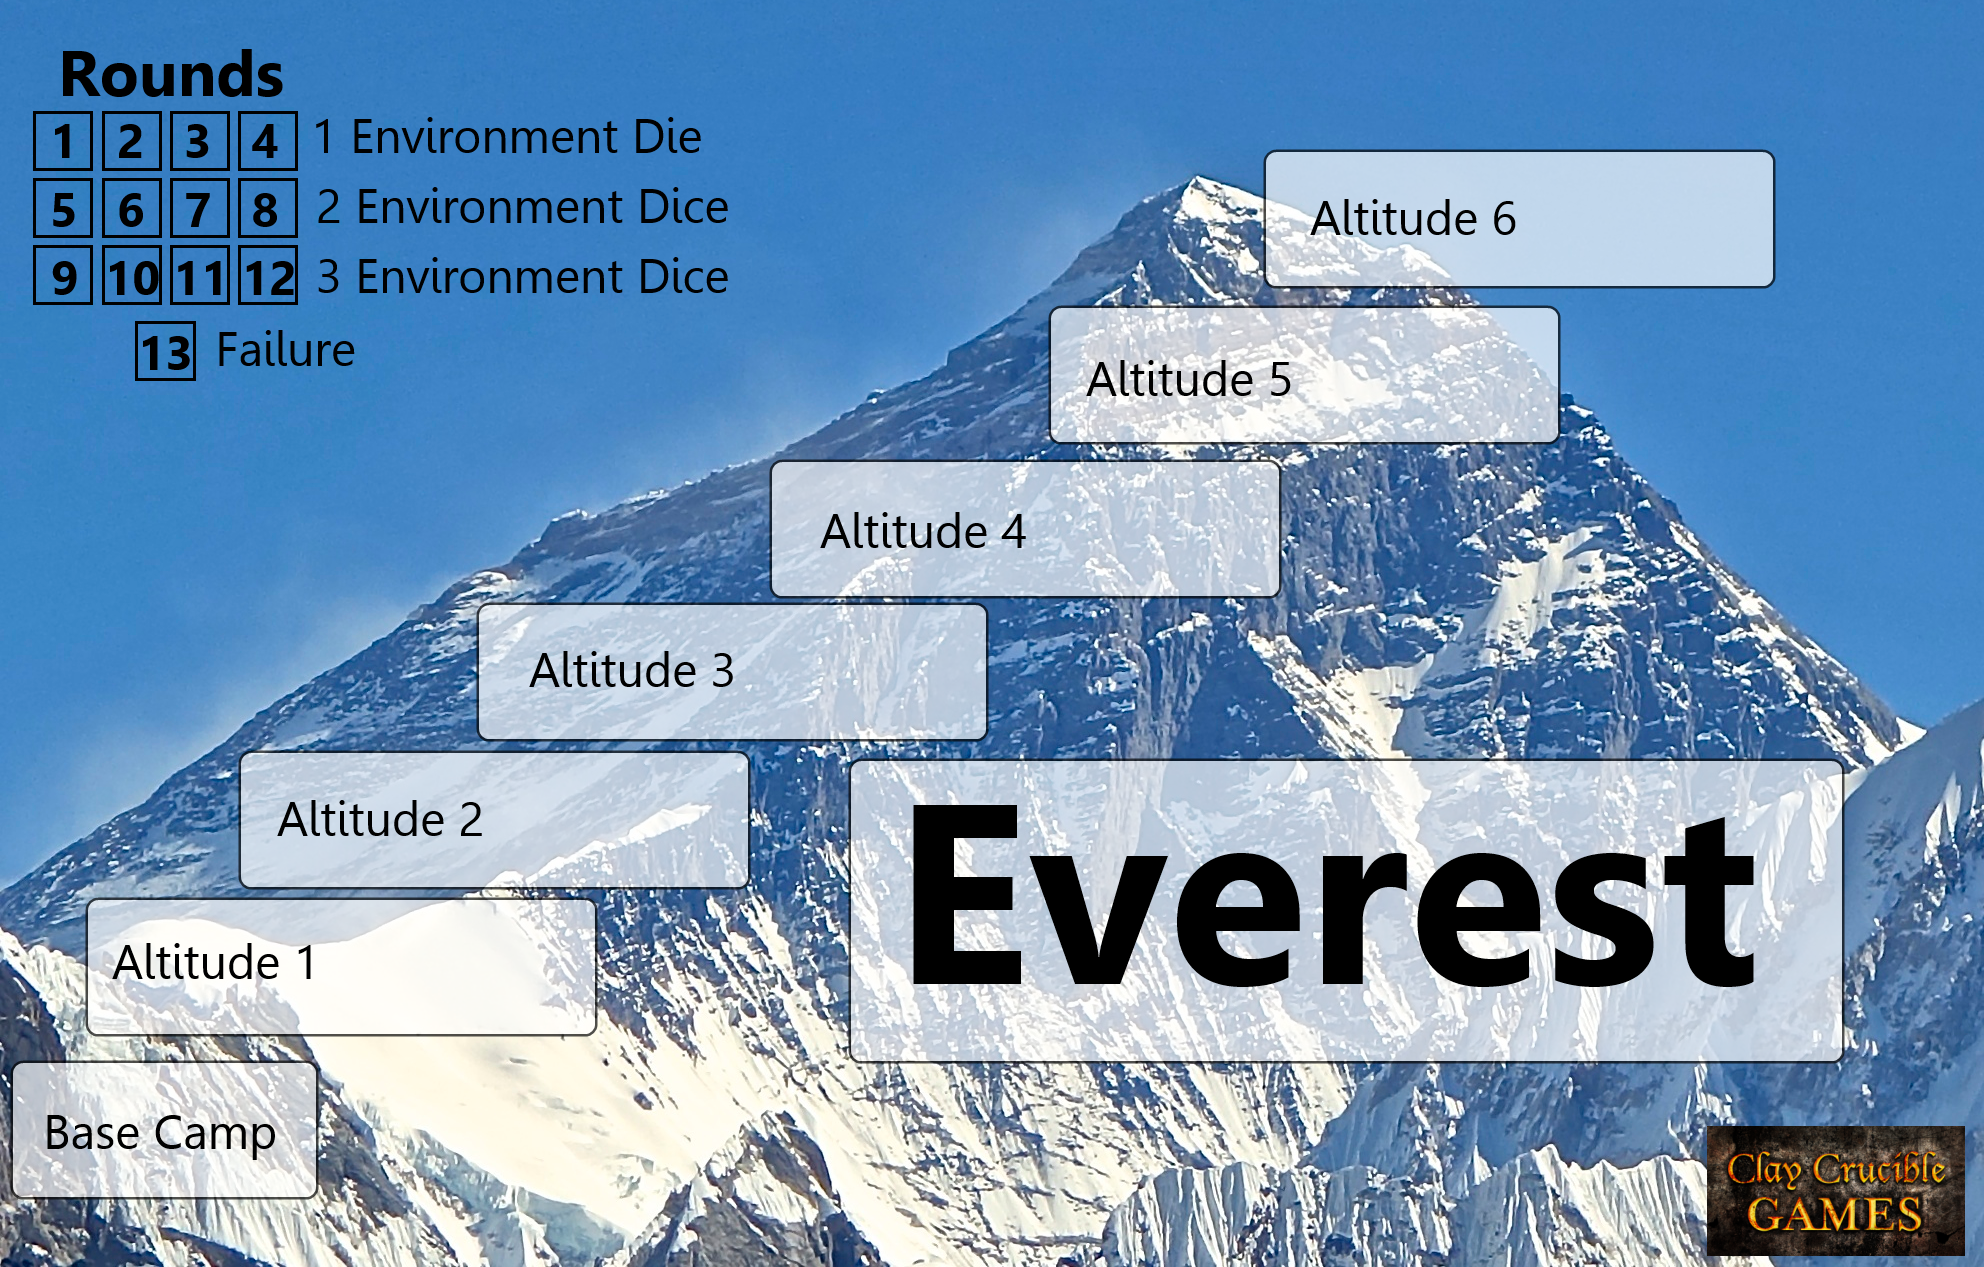 everest singles & personals The bodies of dead climbers on everest are serving as guideposts by mount everest holds the impressive title of 'tallest mountain in the dating back to.